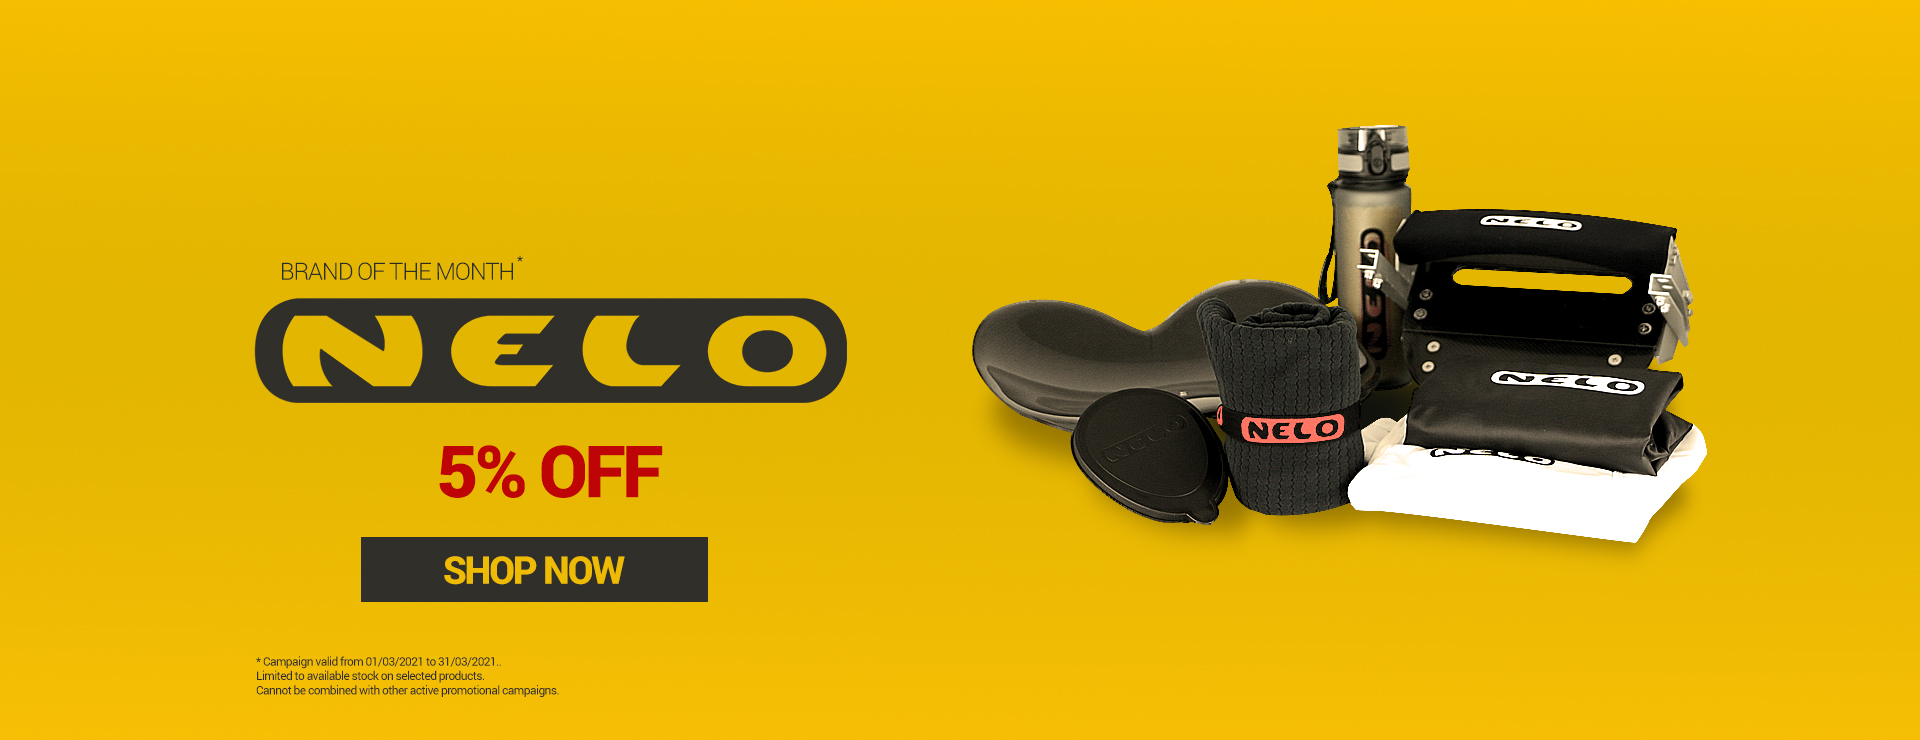 NELO BRAND OF THE MONTH